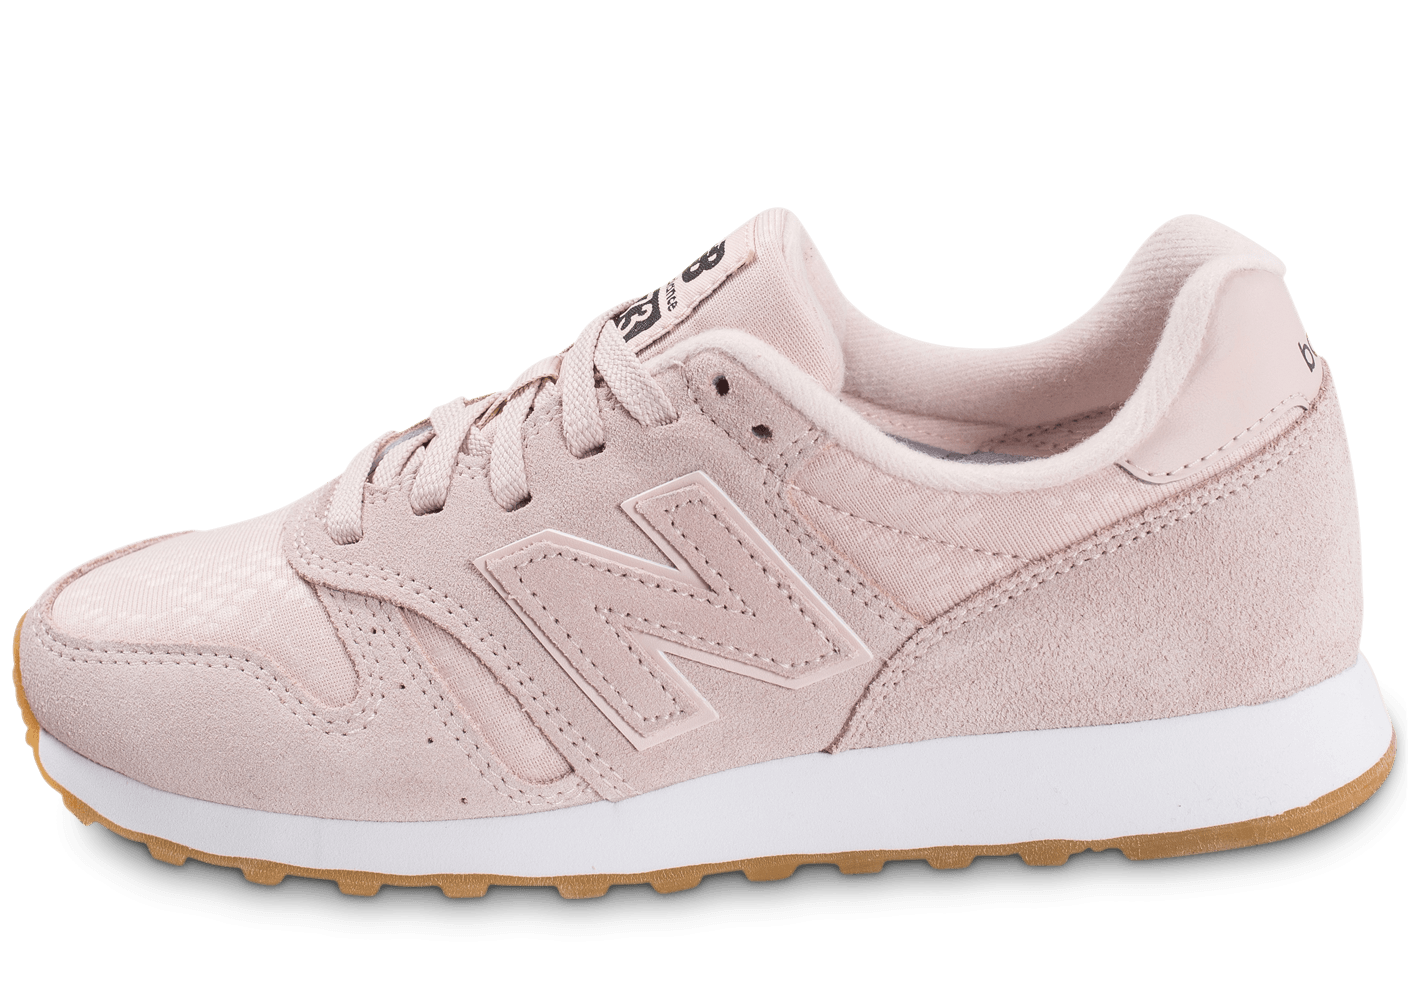 New Balance Baskets basses 420 Femme Beige clair gl19359a